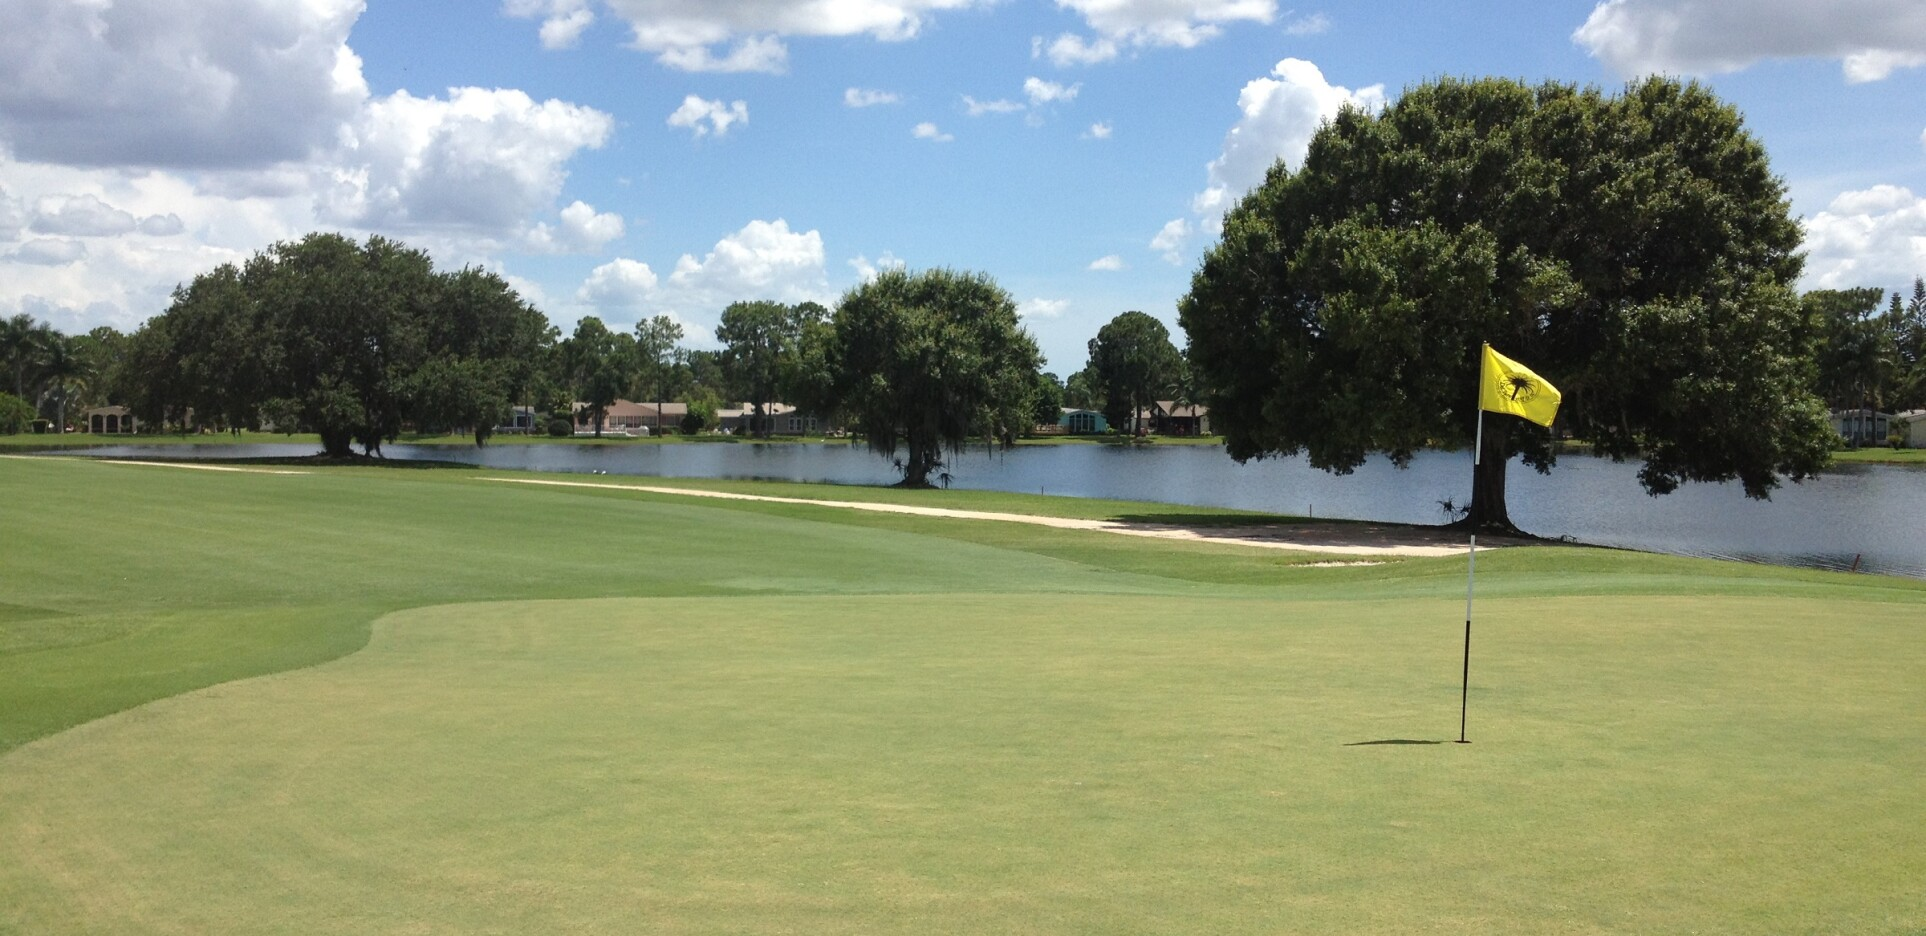 Del Tura hole with flagstick by lake